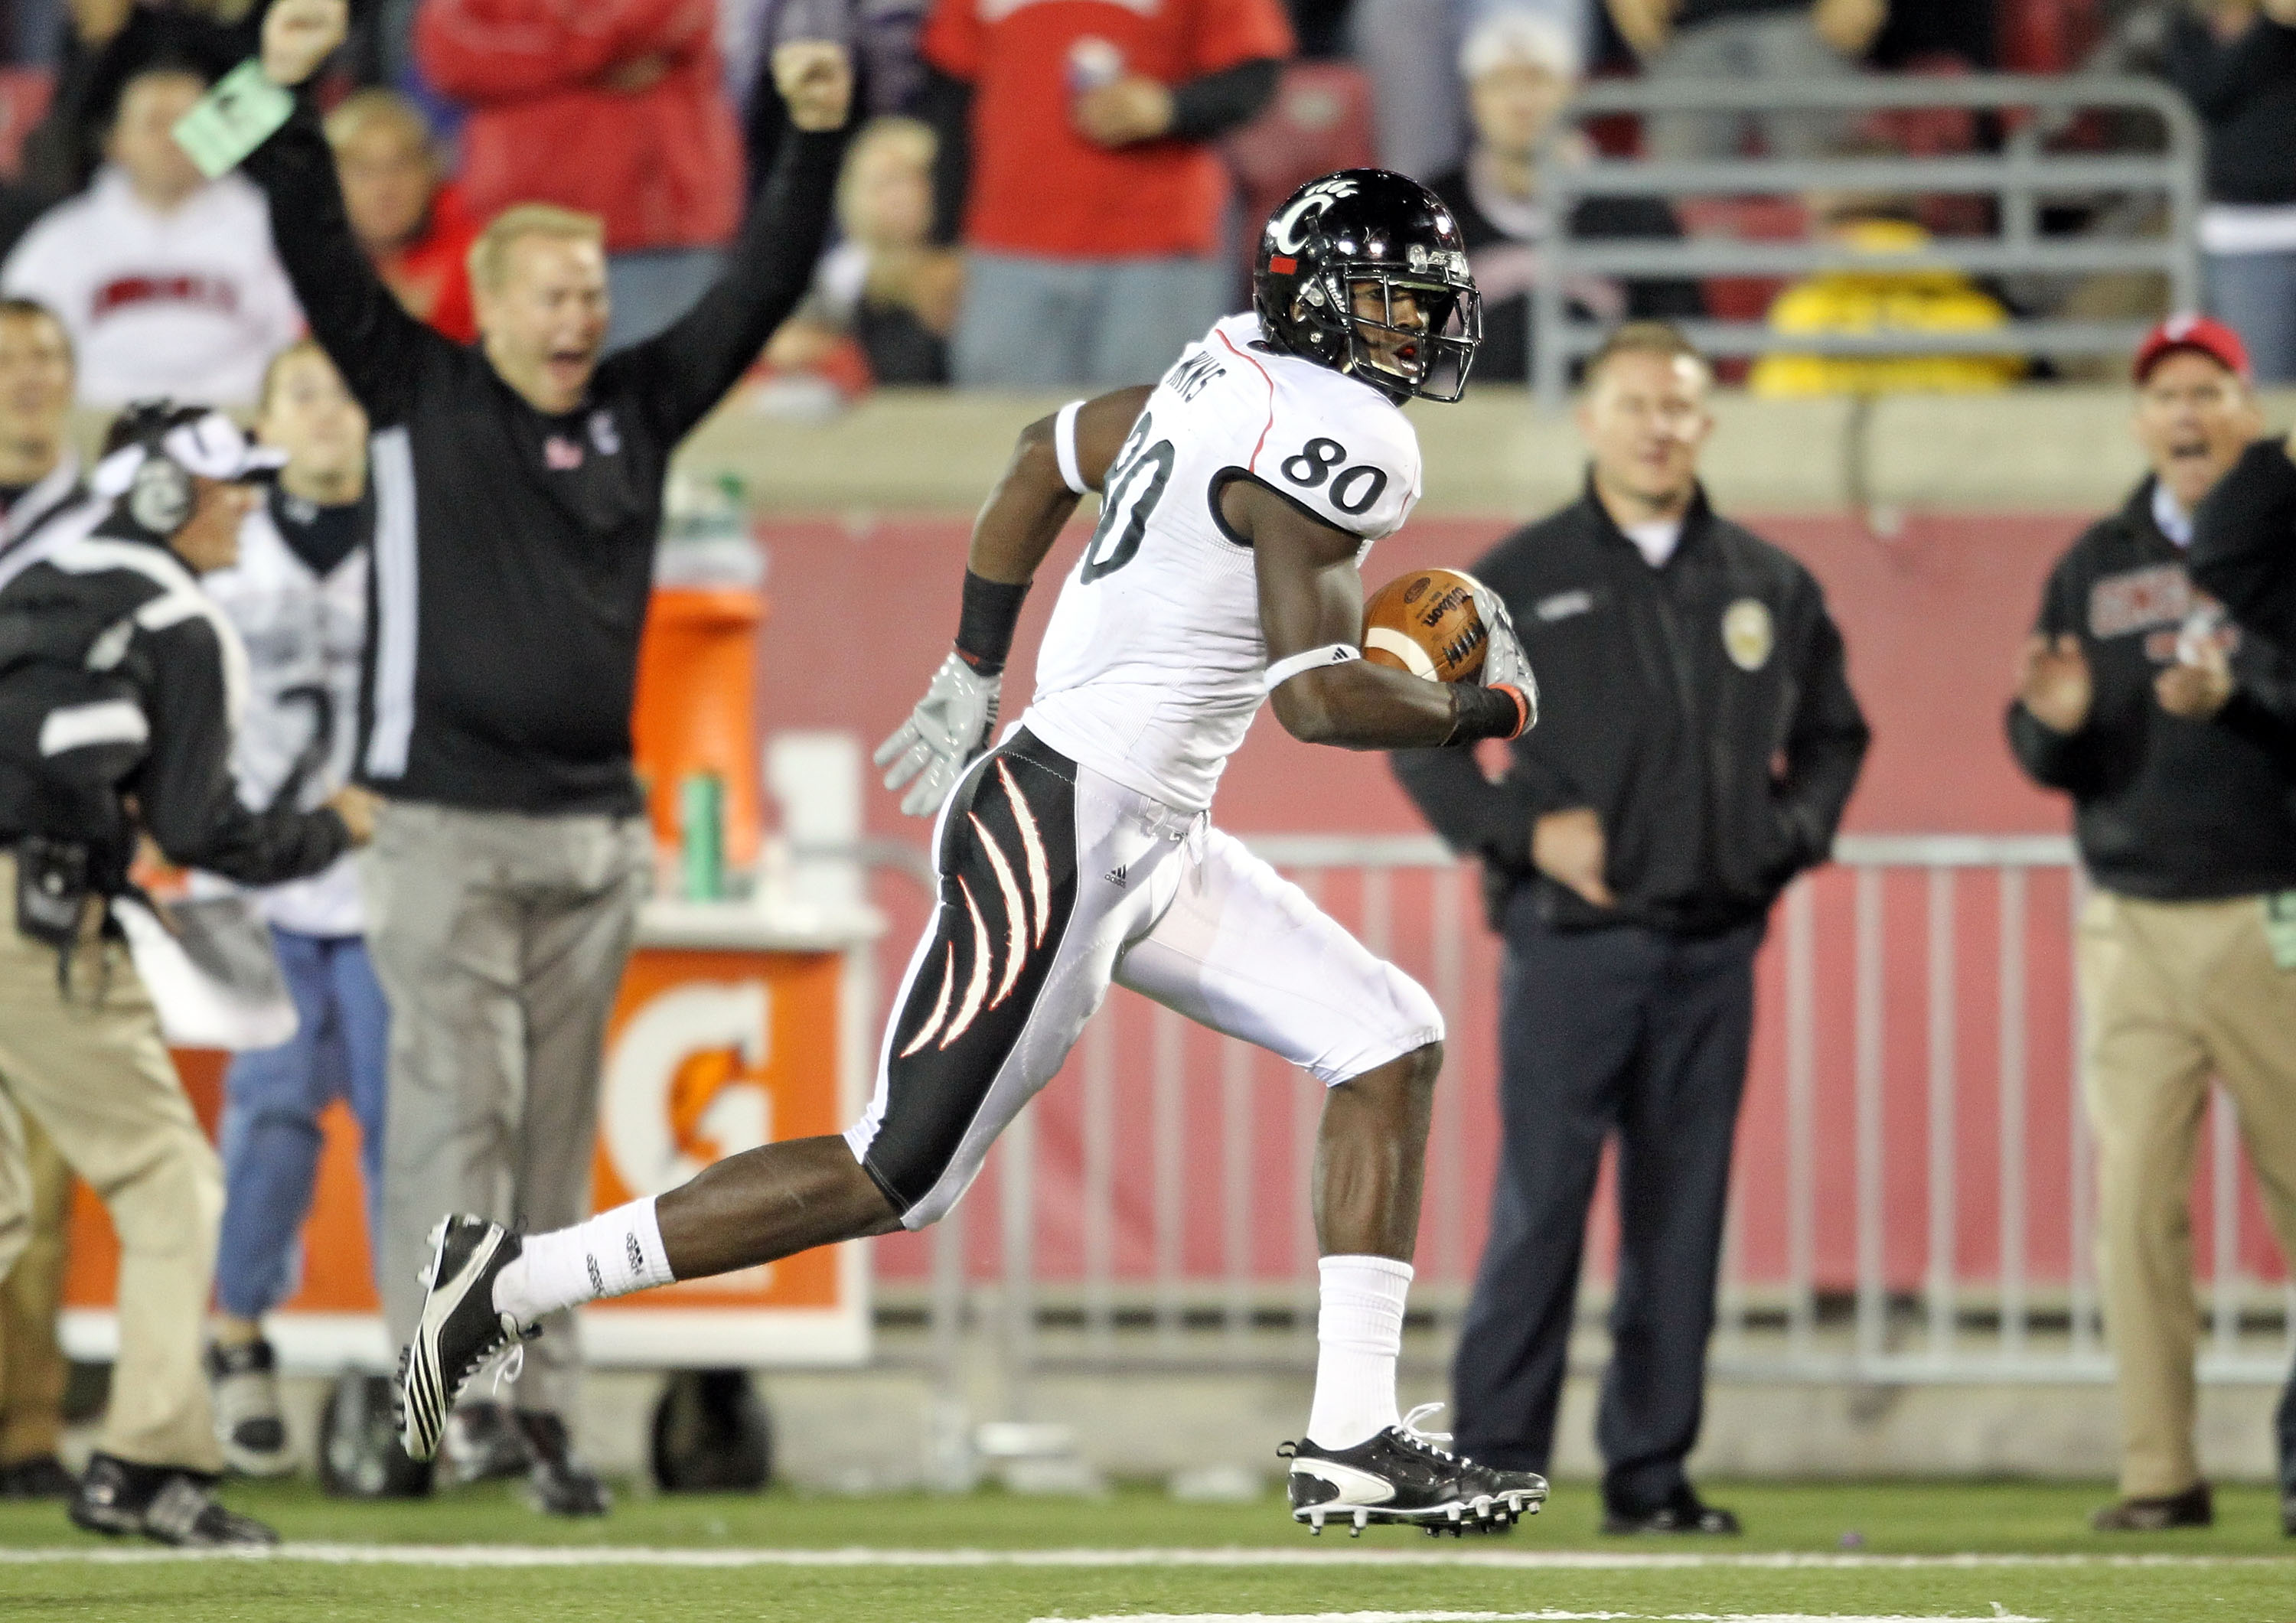 LOUISVILLE, KY - OCTOBER 15:  Armon Binns # 80 of the Cincinnati Bearcats runs for a touchdown during the Big East Conference game against the Louisville Cardinals at Papa John's Cardinal Stadium on October 15, 2010 in Louisville, Kentucky.  (Photo by And